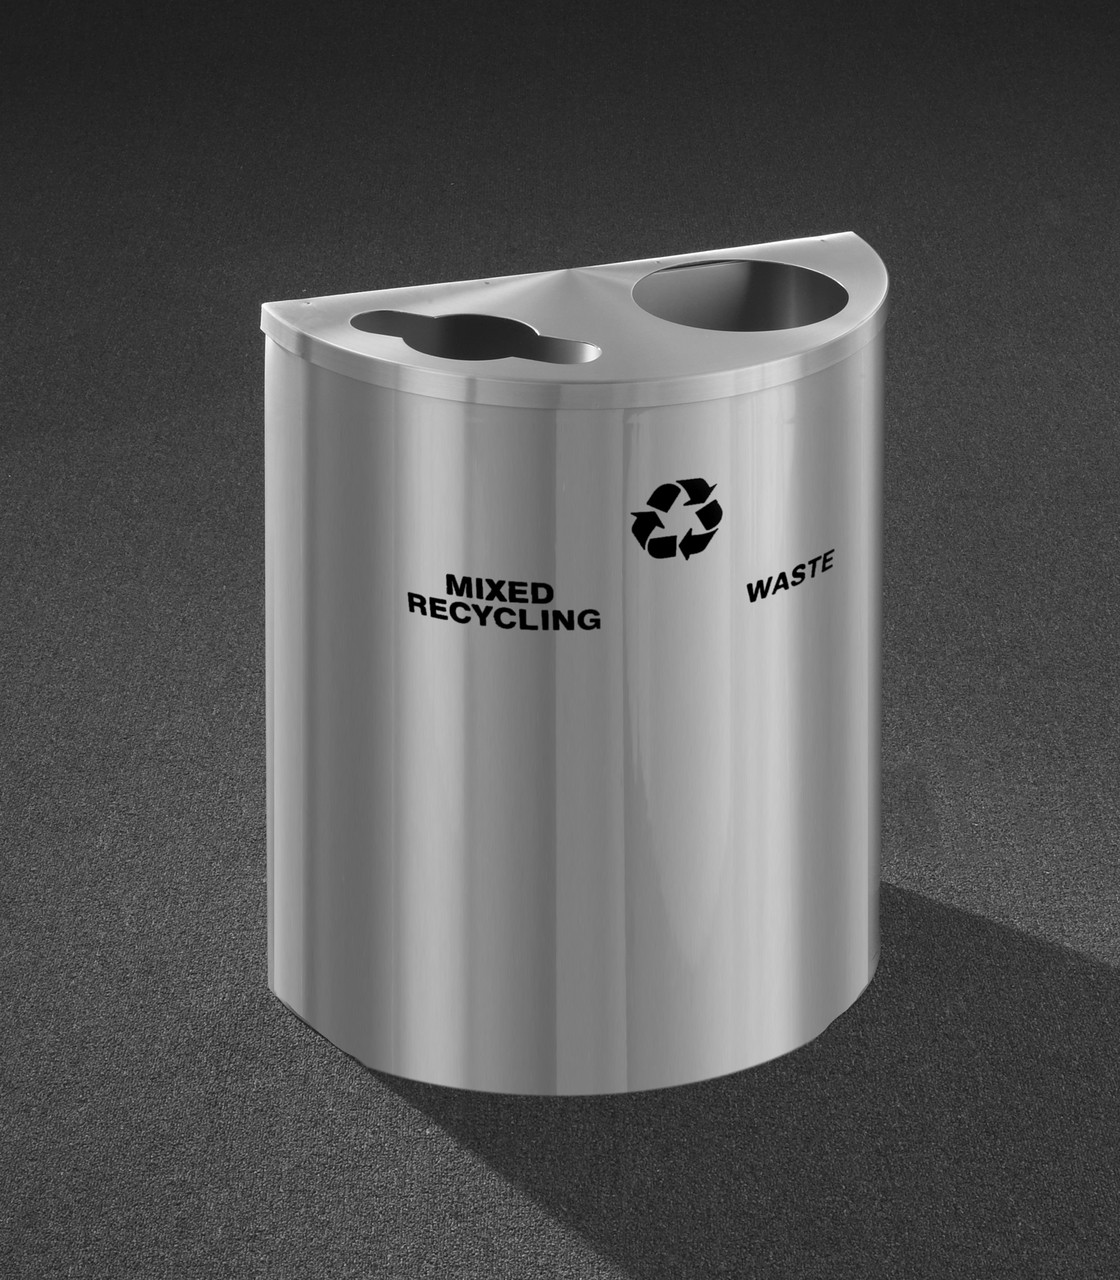 29 Gallon Dual Half Round Recycling Trash Can Hinged Lid Satin Aluminum Mixed and Waste Openings